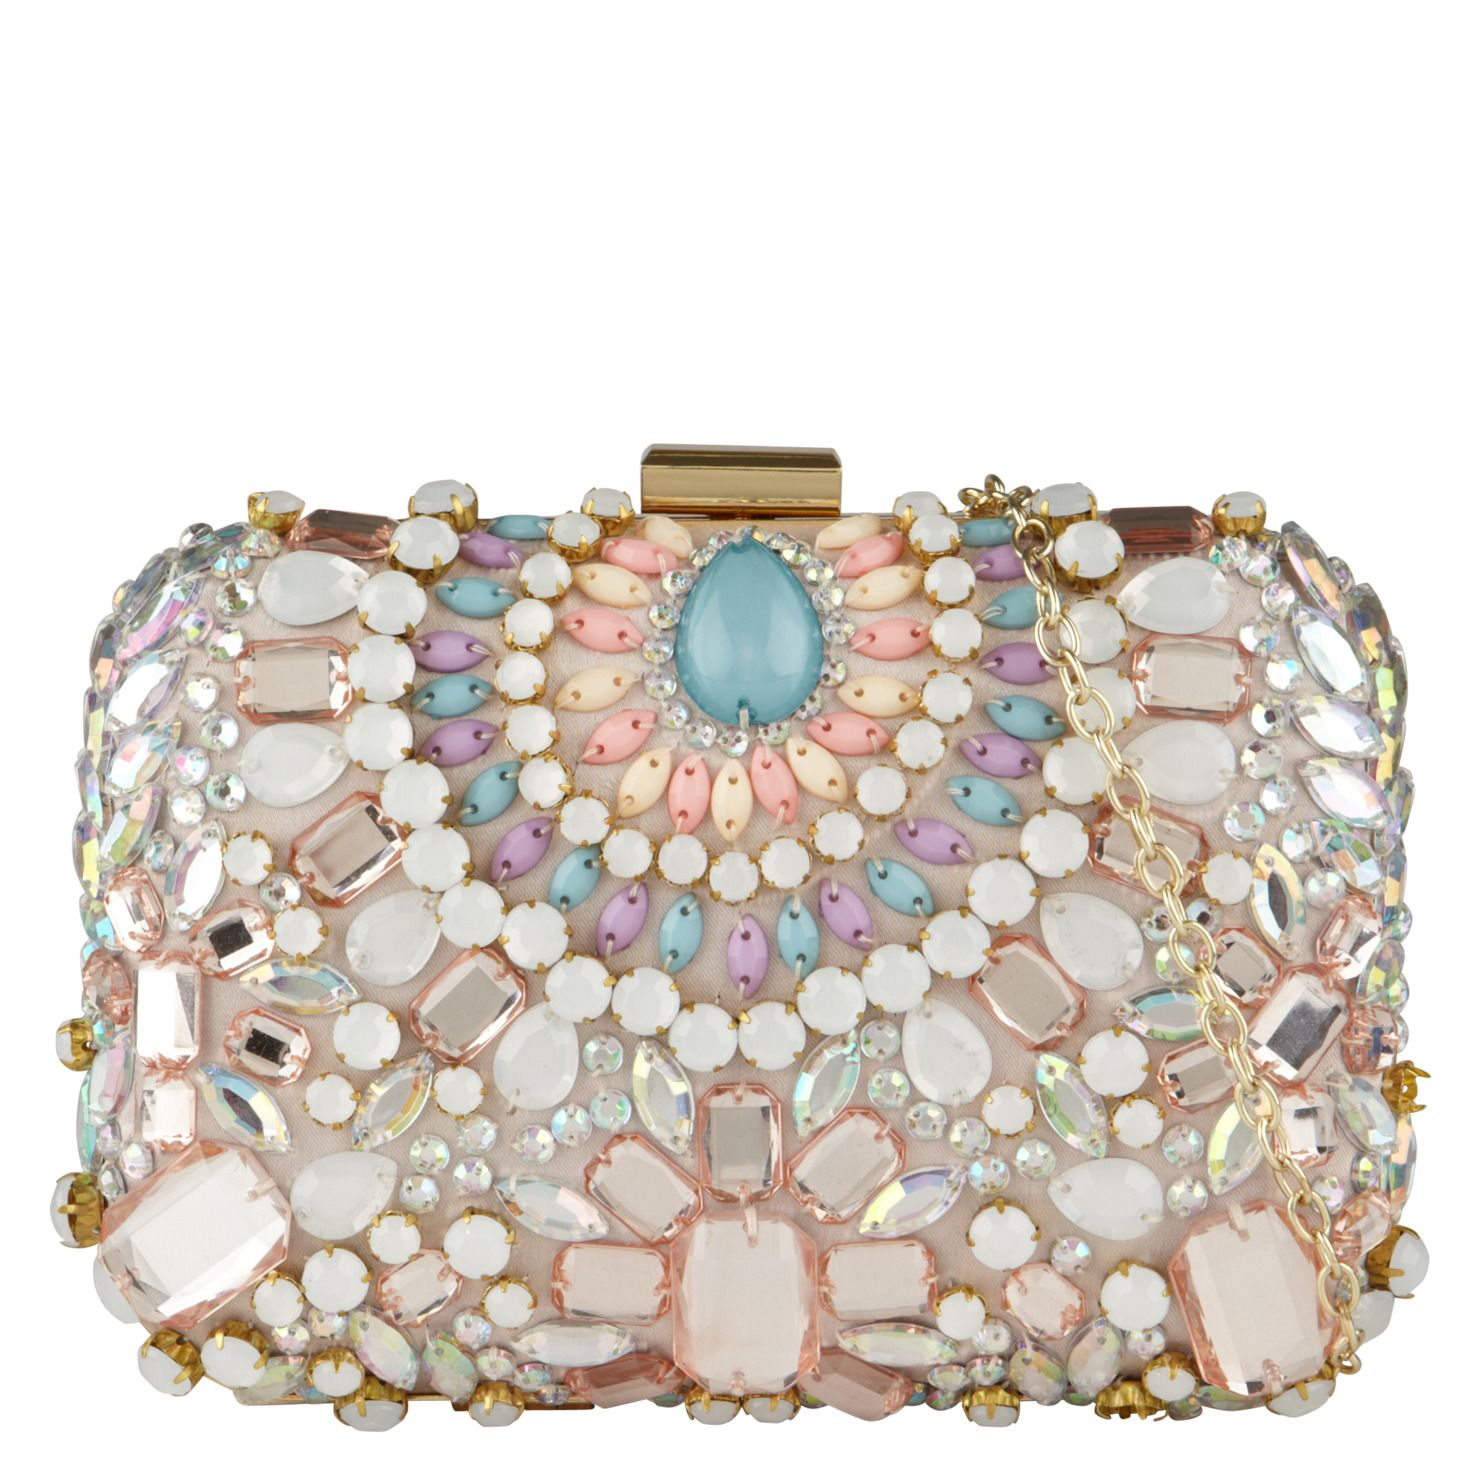 BIGHORSE - handbags's clutches & evening bags for sale at ALDO Shoes ...